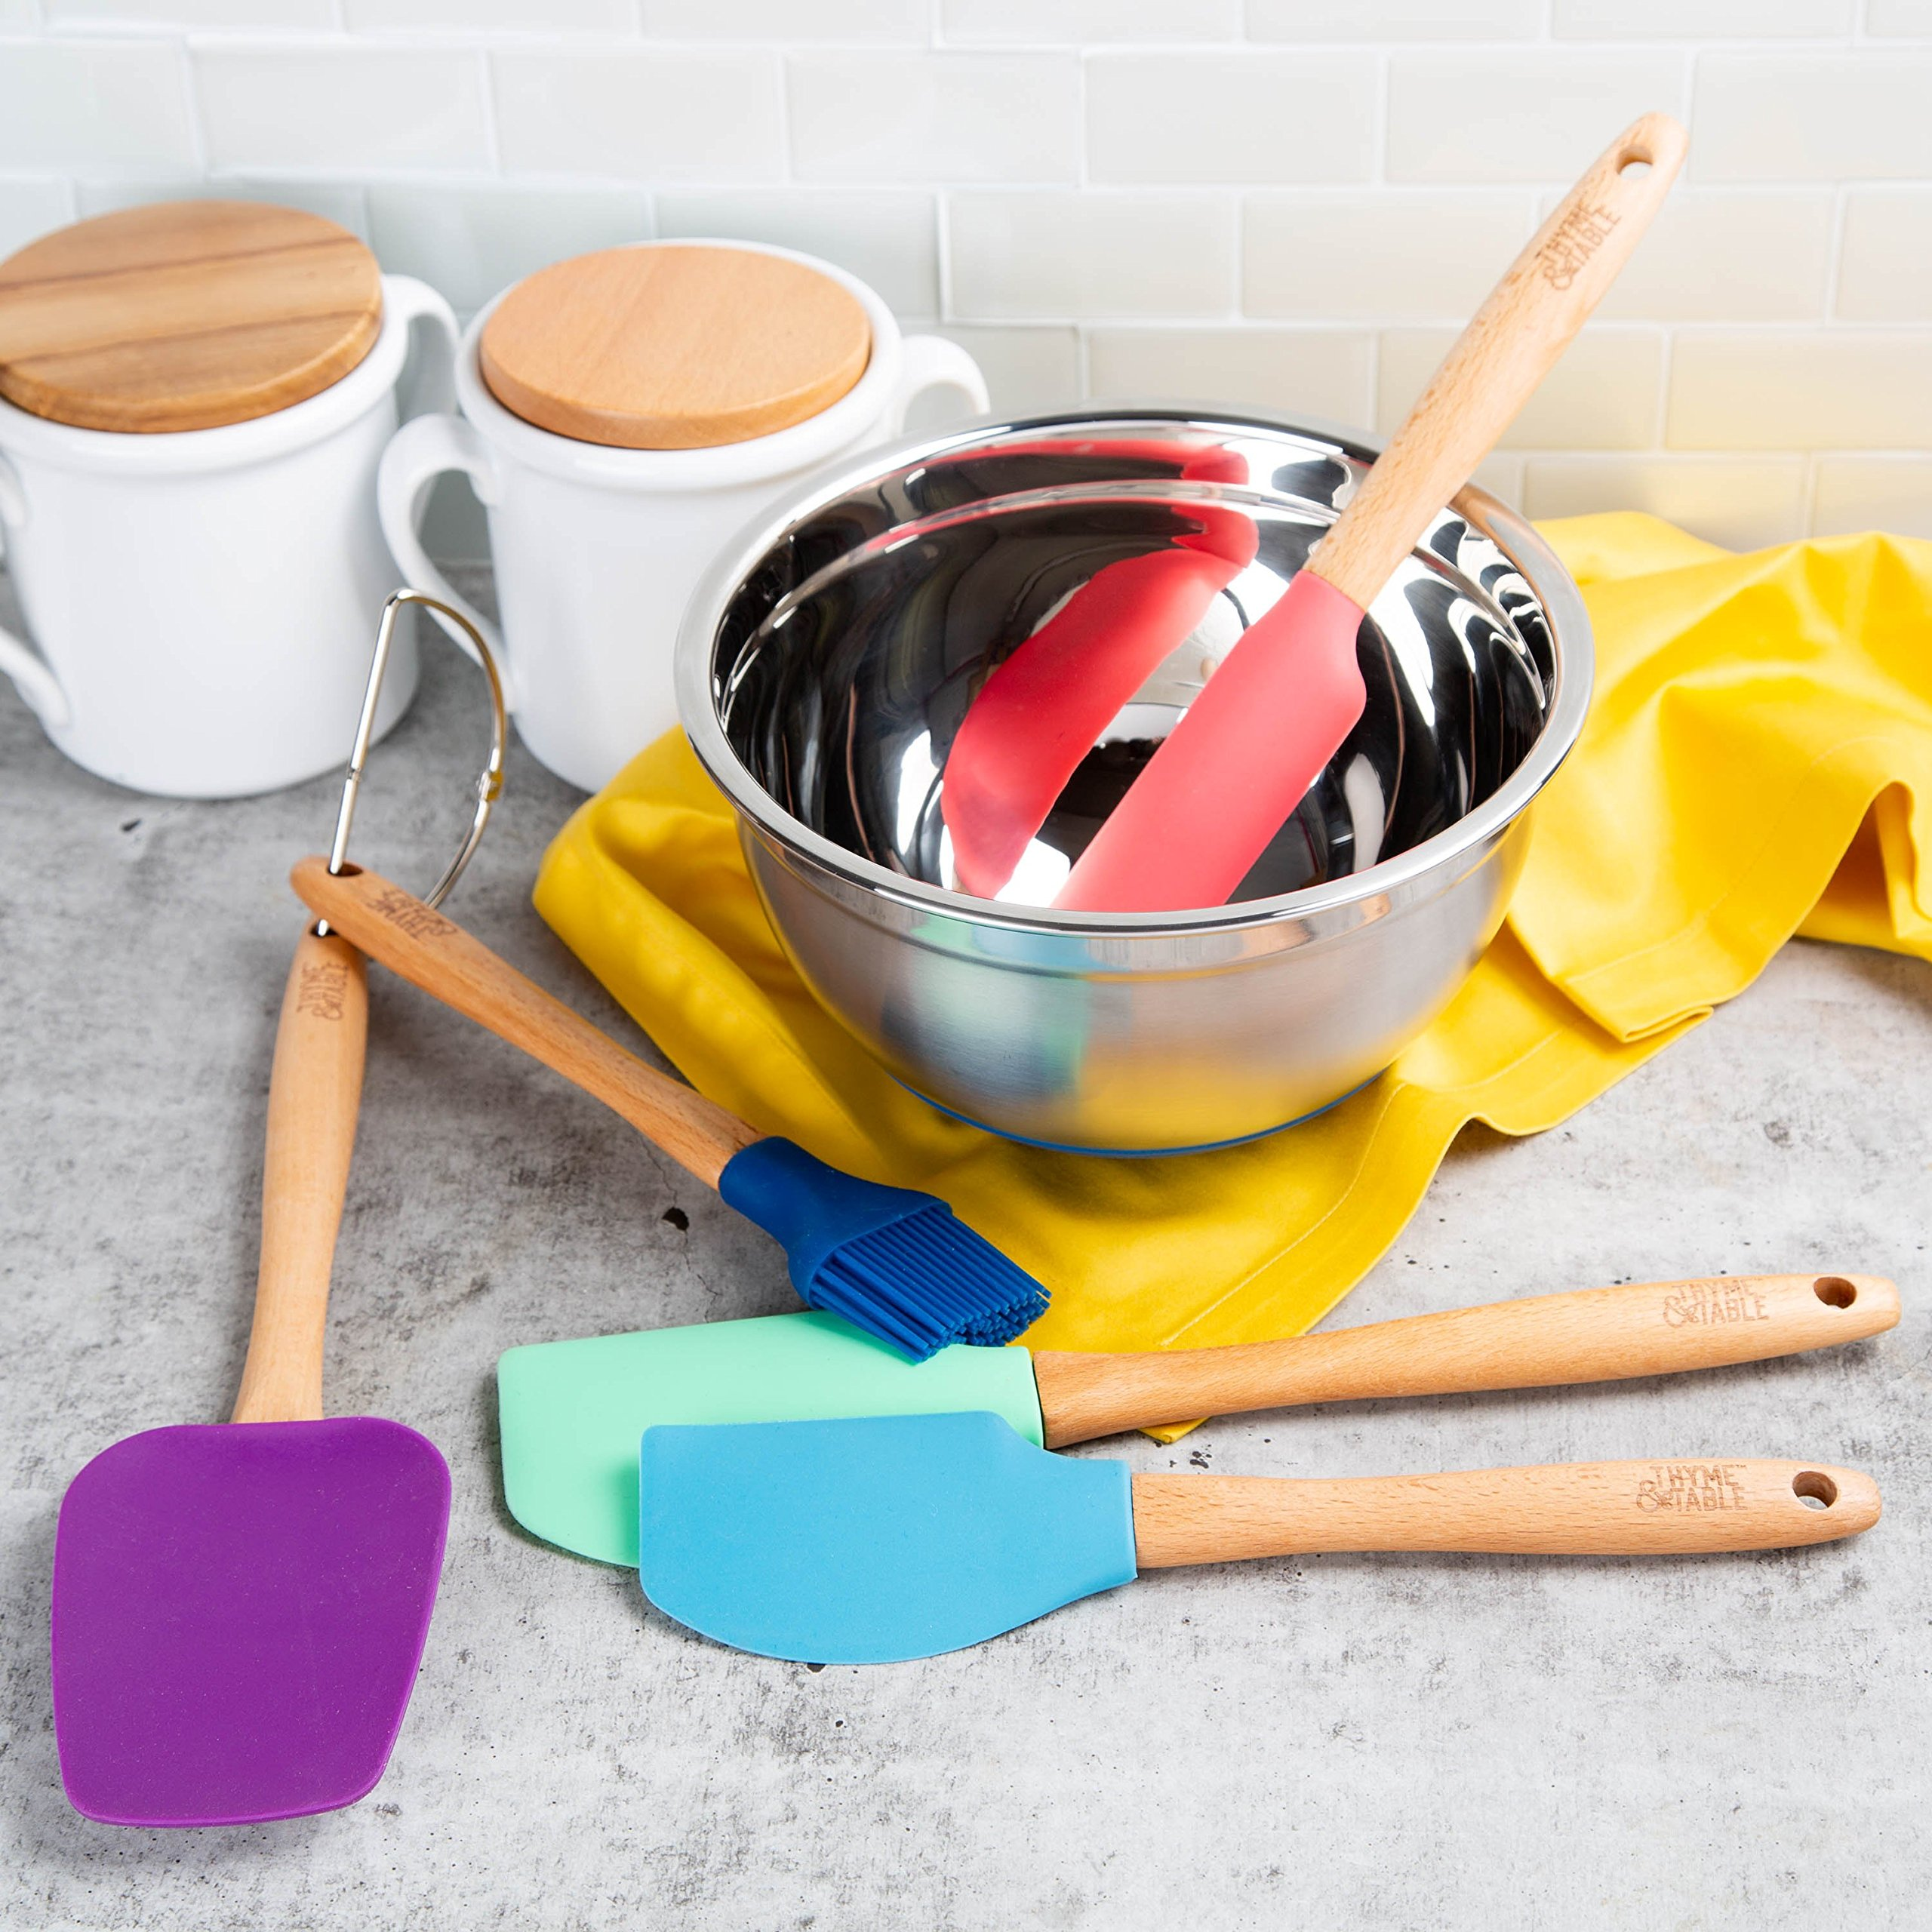 Thyme & Table Kitchen 6 Piece Set - 5 Pieces Silicone and Beechwood Set with Stainless Steel Mixing Bowl